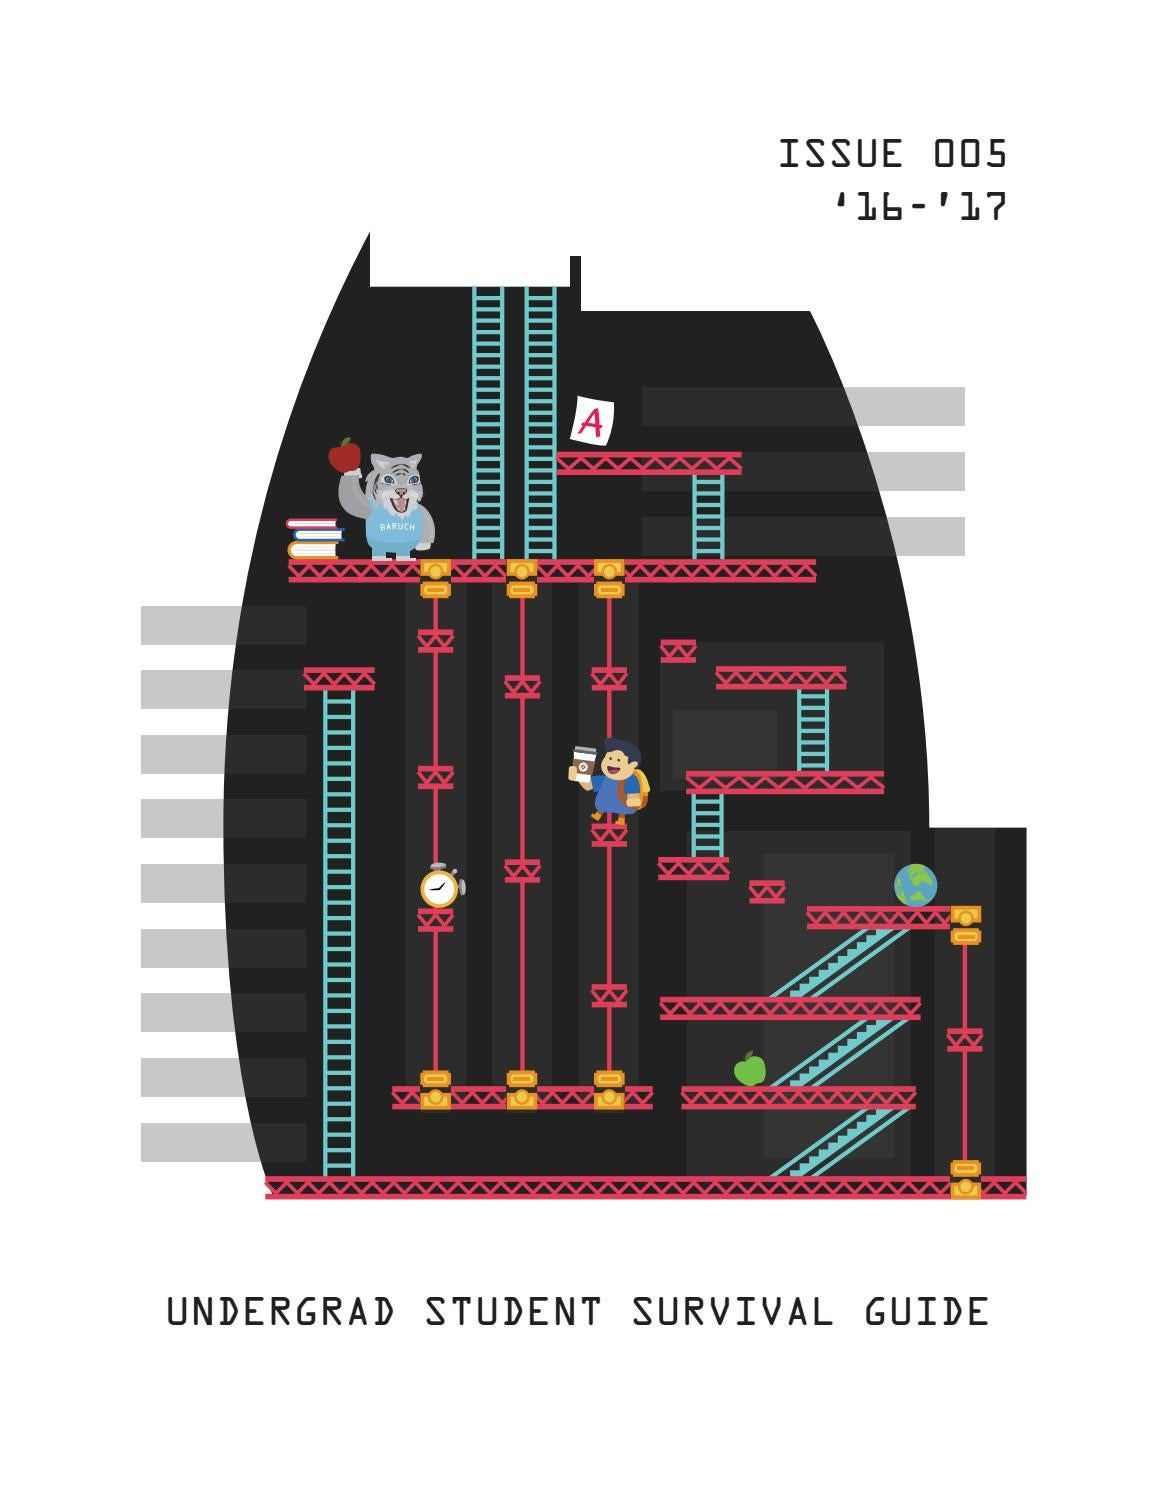 Baruch Undergrad Student Survival Guide 16 17 By Usg Baruch Issuu